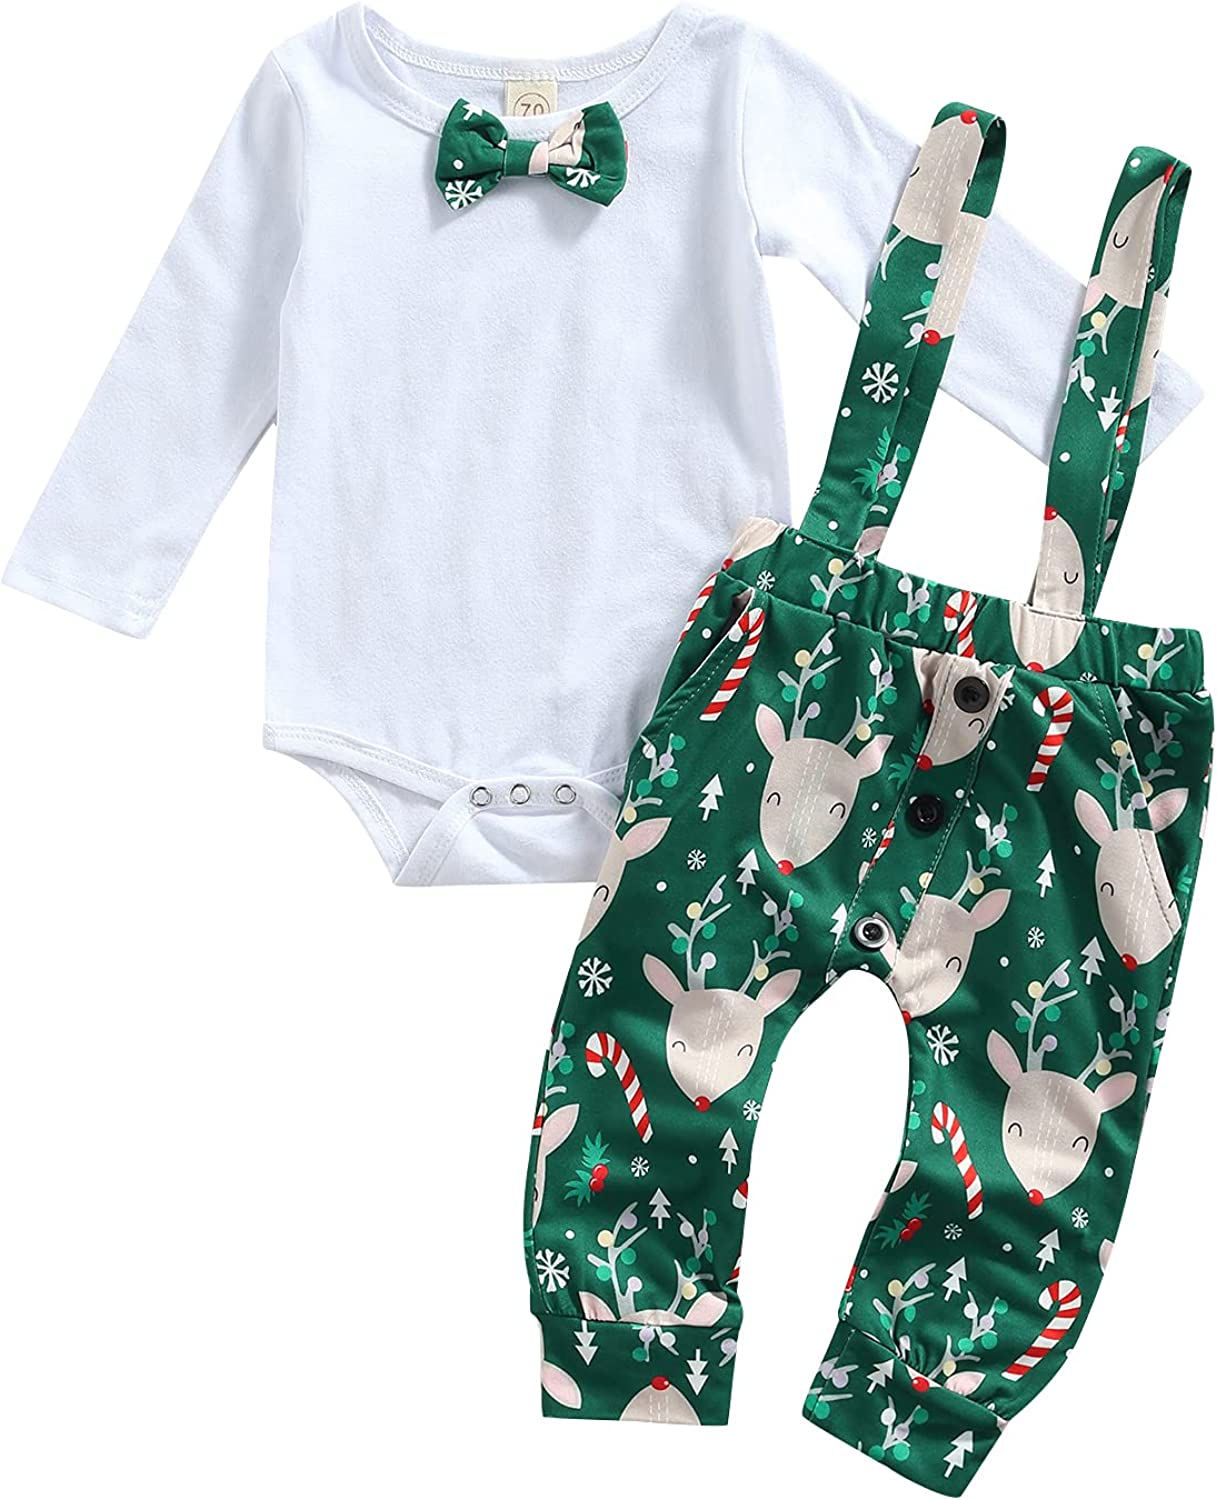 Newborn Baby Boy Christmas Outfits, Infant Long Sleeve Bowtie Romper Tops+Strap Pants Clothes Set